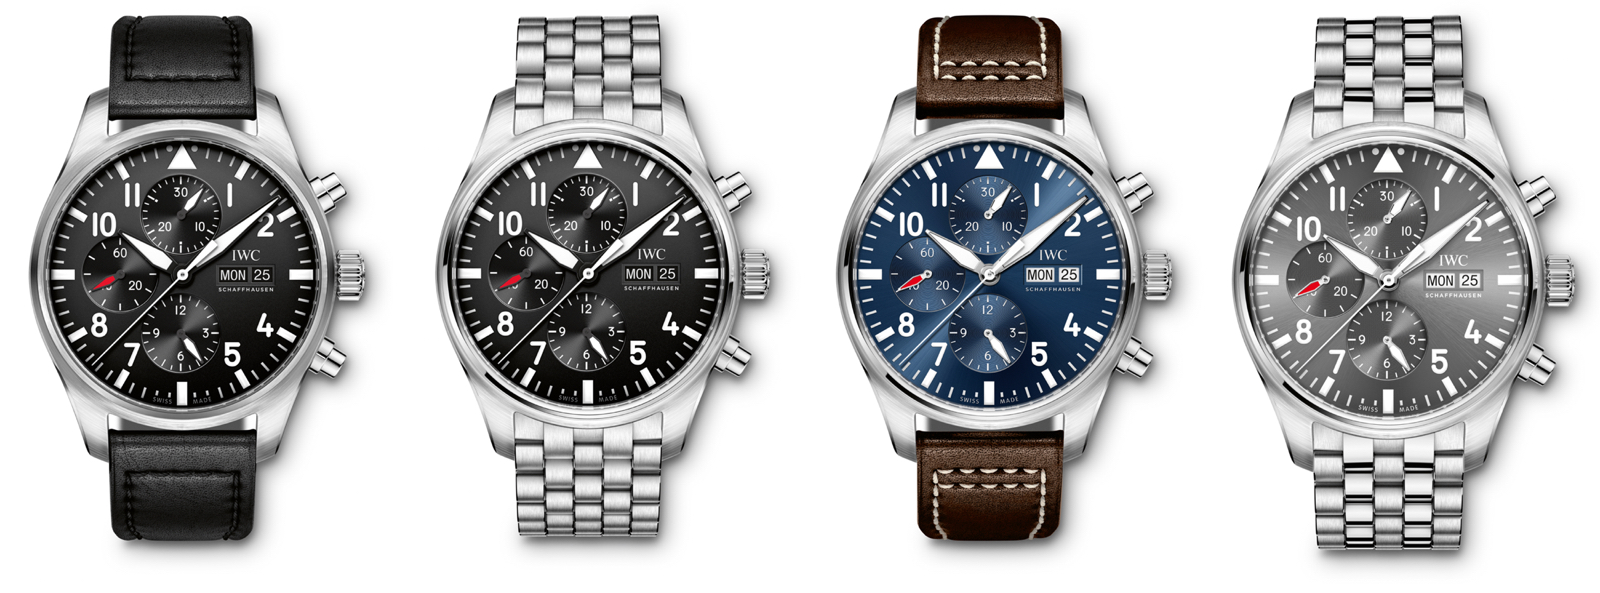 IWC 2016 Pilot Watch Chronograph Faces